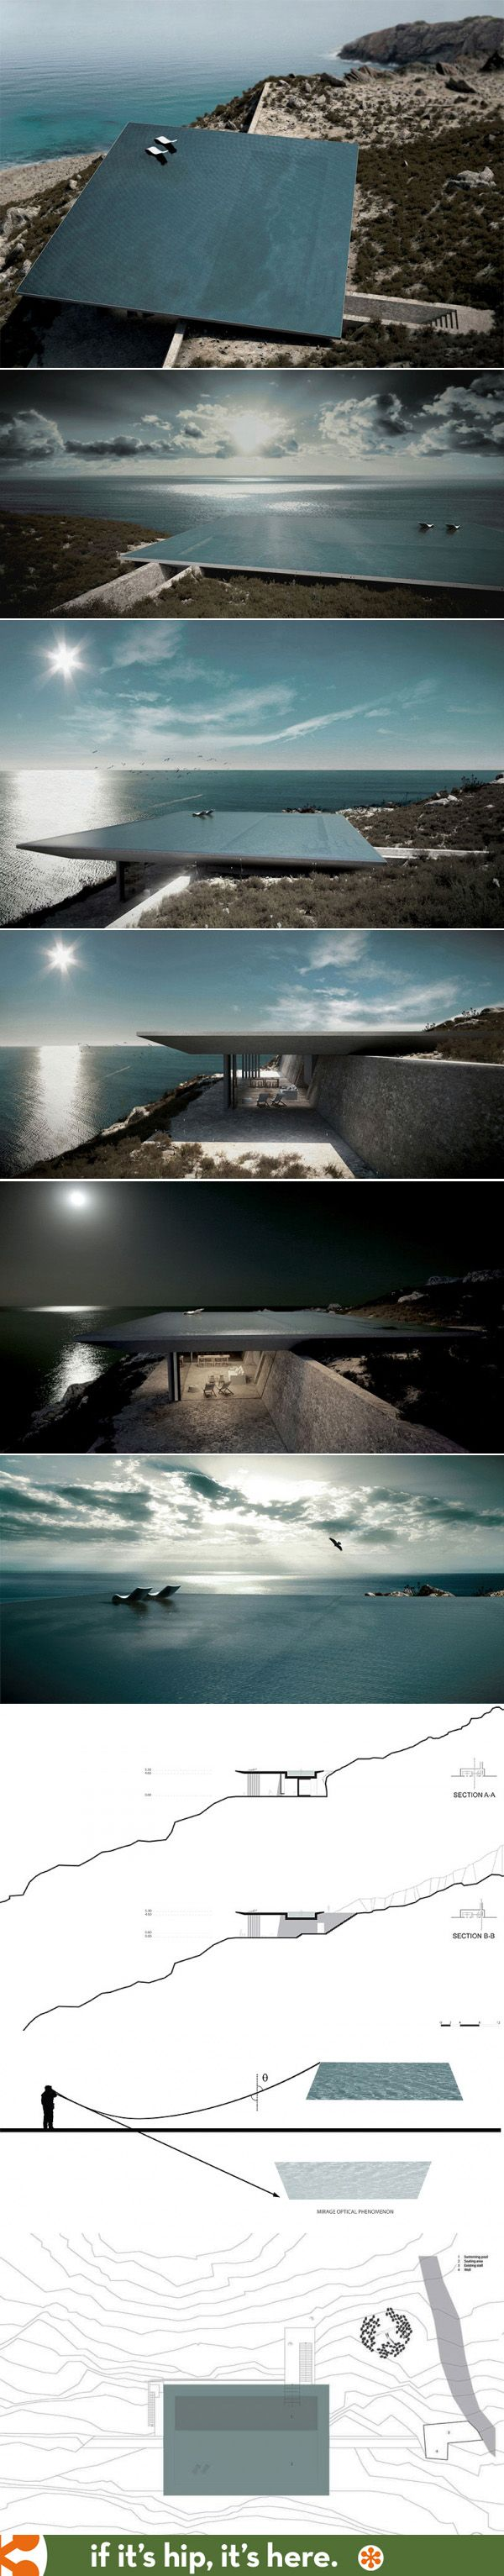 Rimless pool serves as a roof for the Mirage House in Greece by Kois Architects